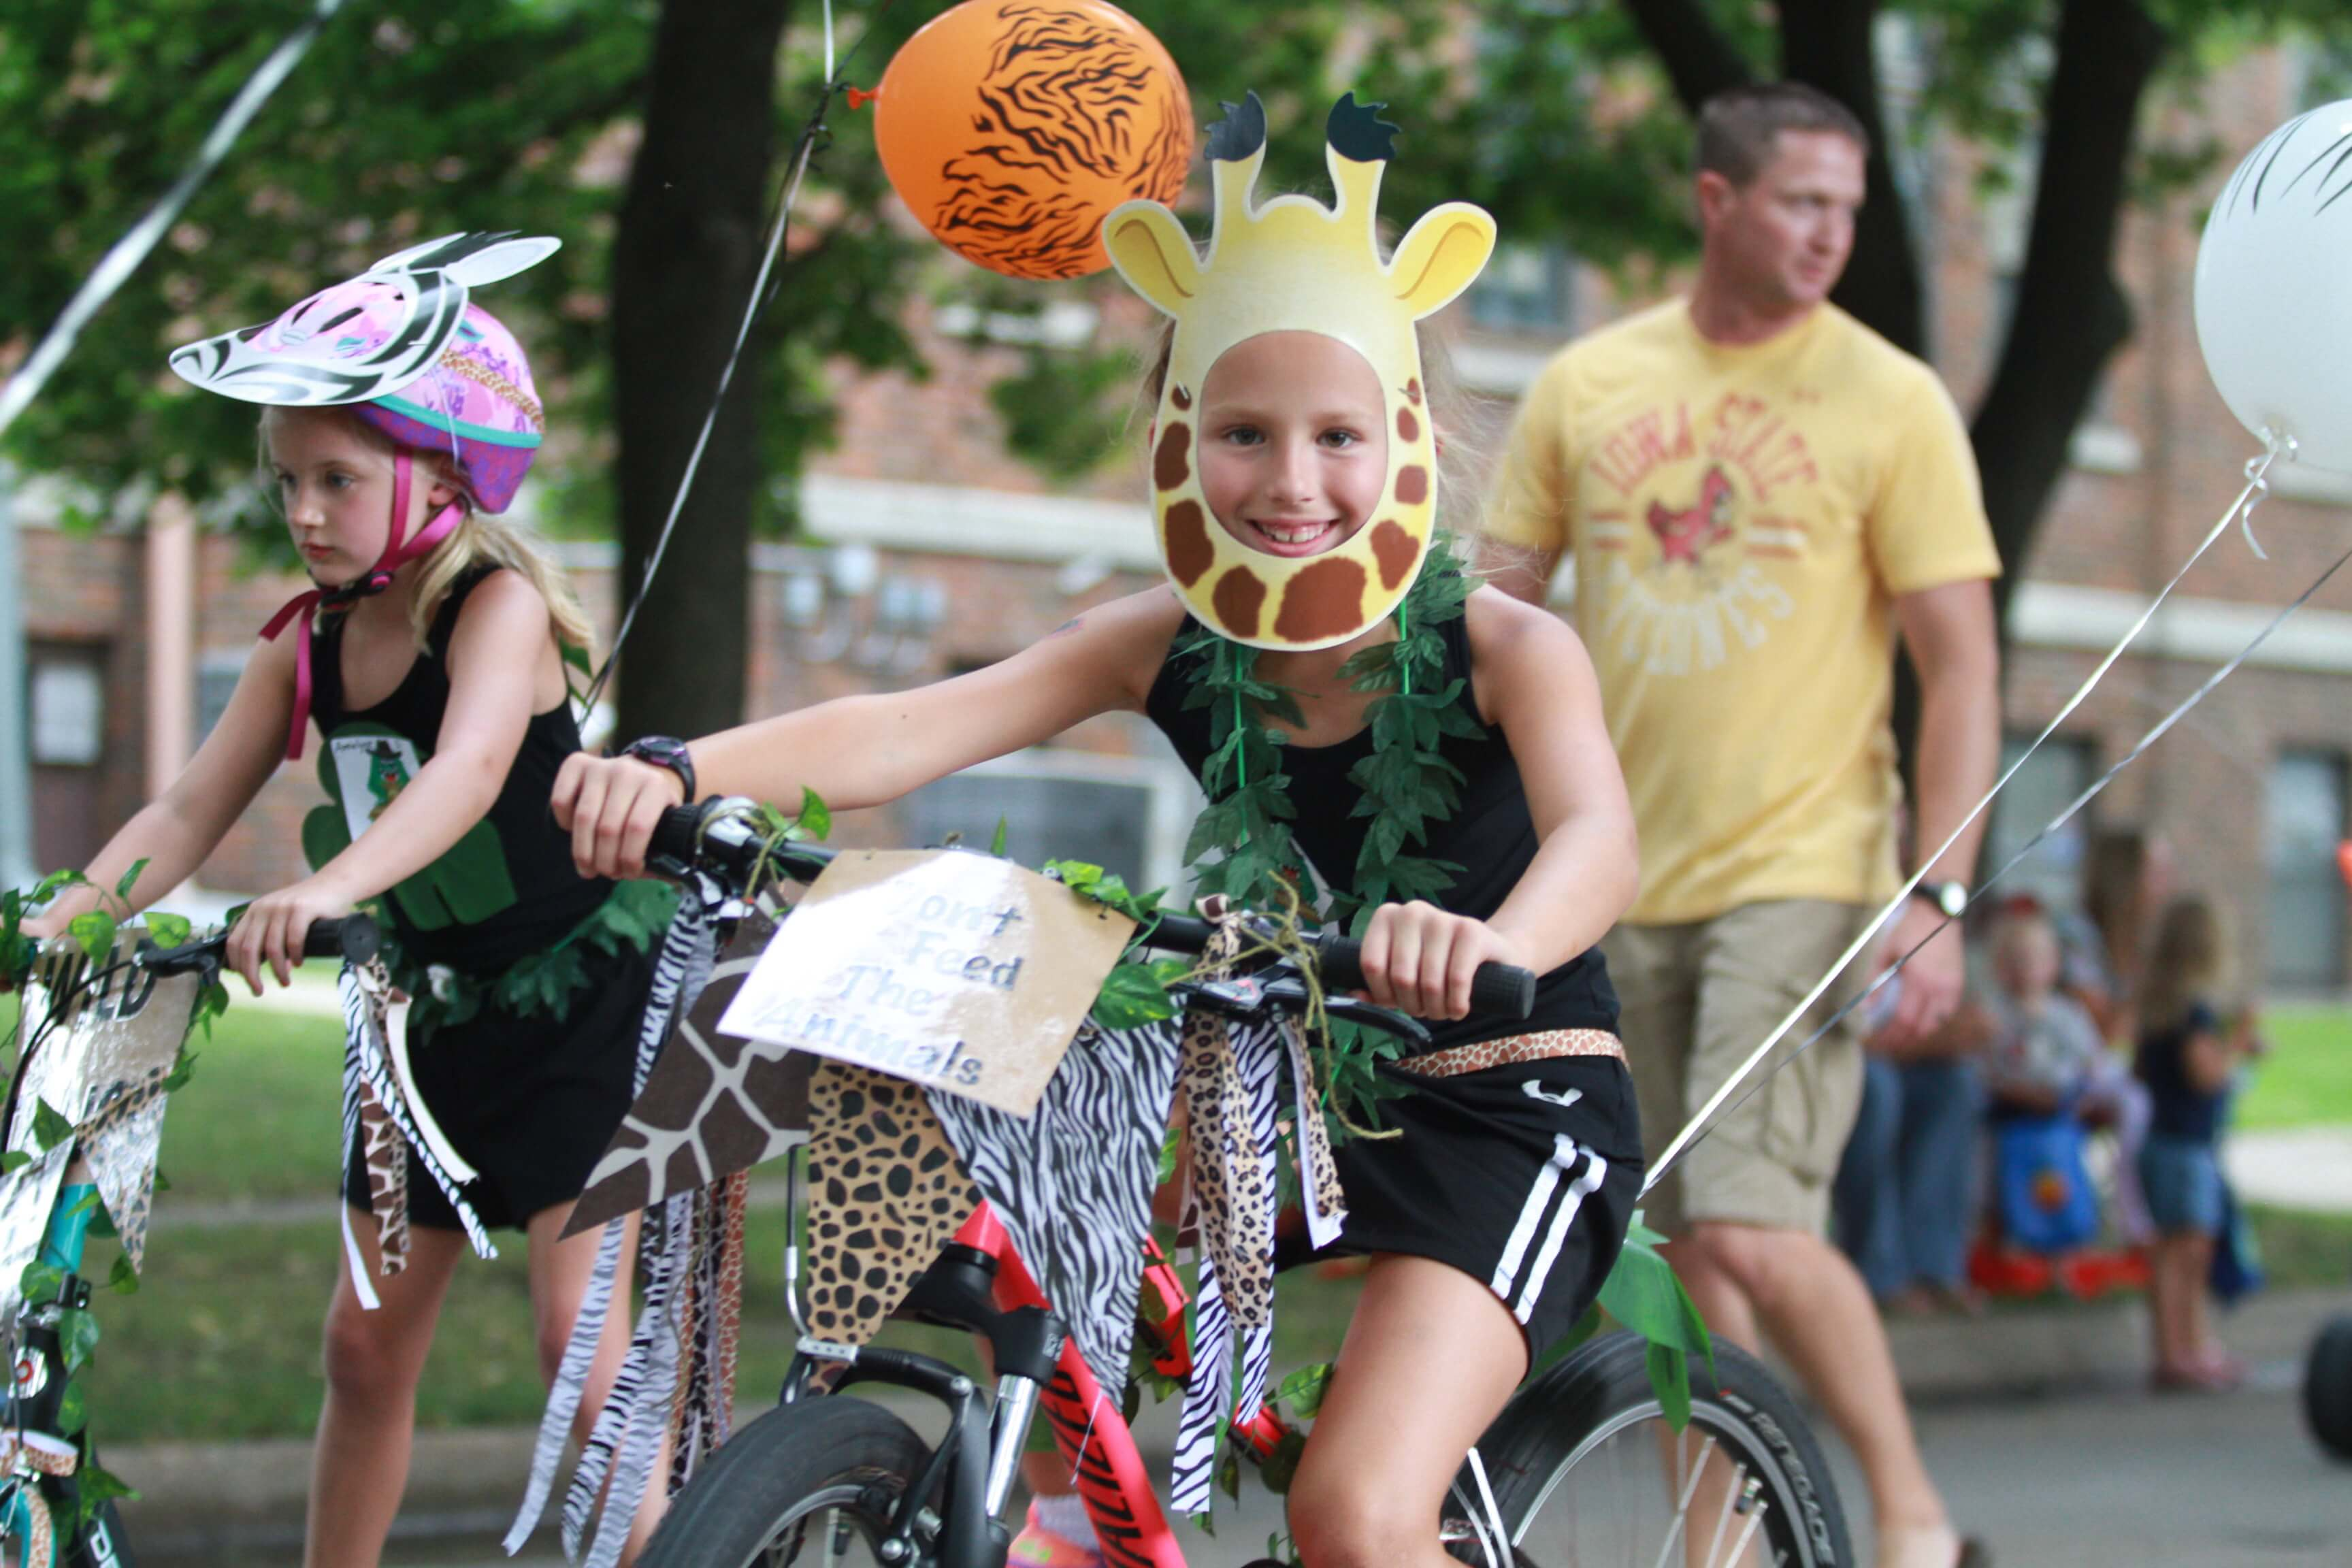 Two girls participate in the Kiddie Parade on bikes with their helmets decorated as a Giraffe and a Zebra.